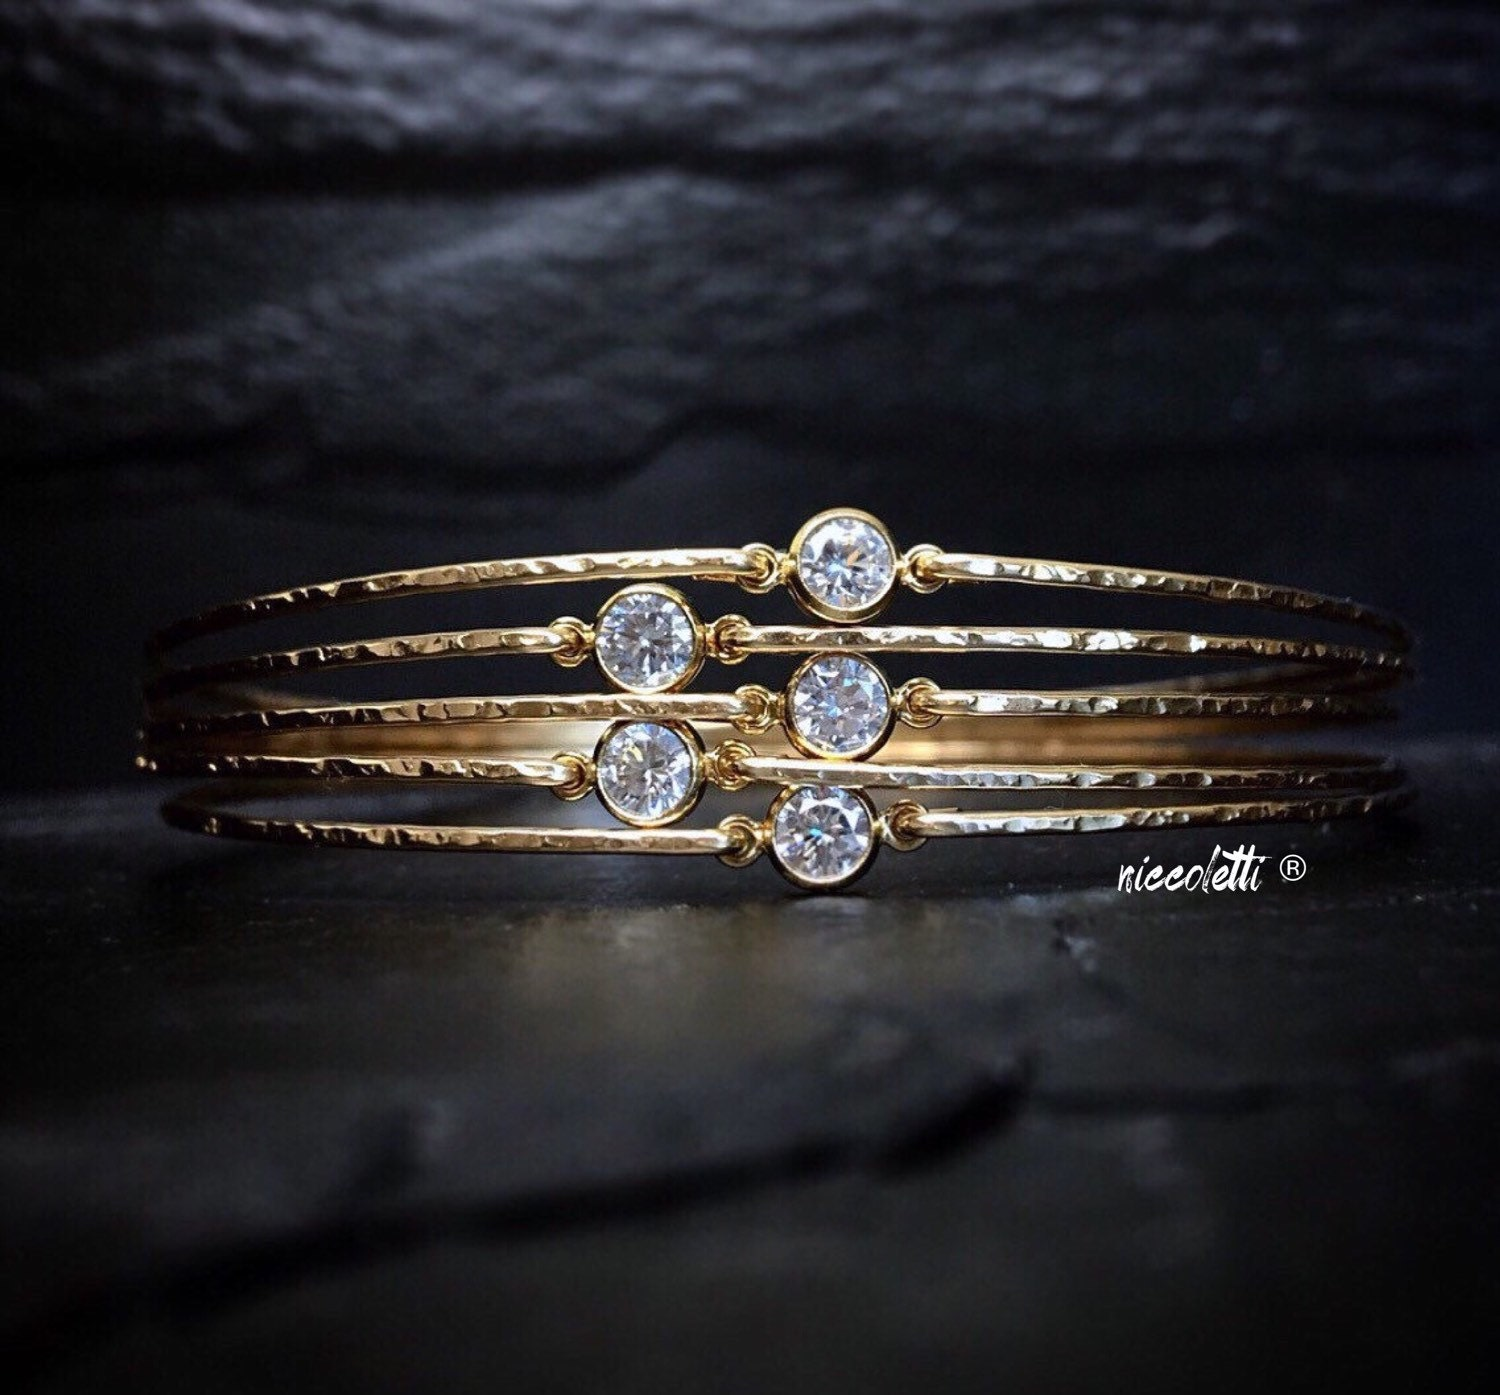 Set of Delicate Diamond Alternative Bangle / Gold Stacking Bangle / Dainty 14k Gold Bangle / Diamond Solitaire Bracelets / April Birthstone